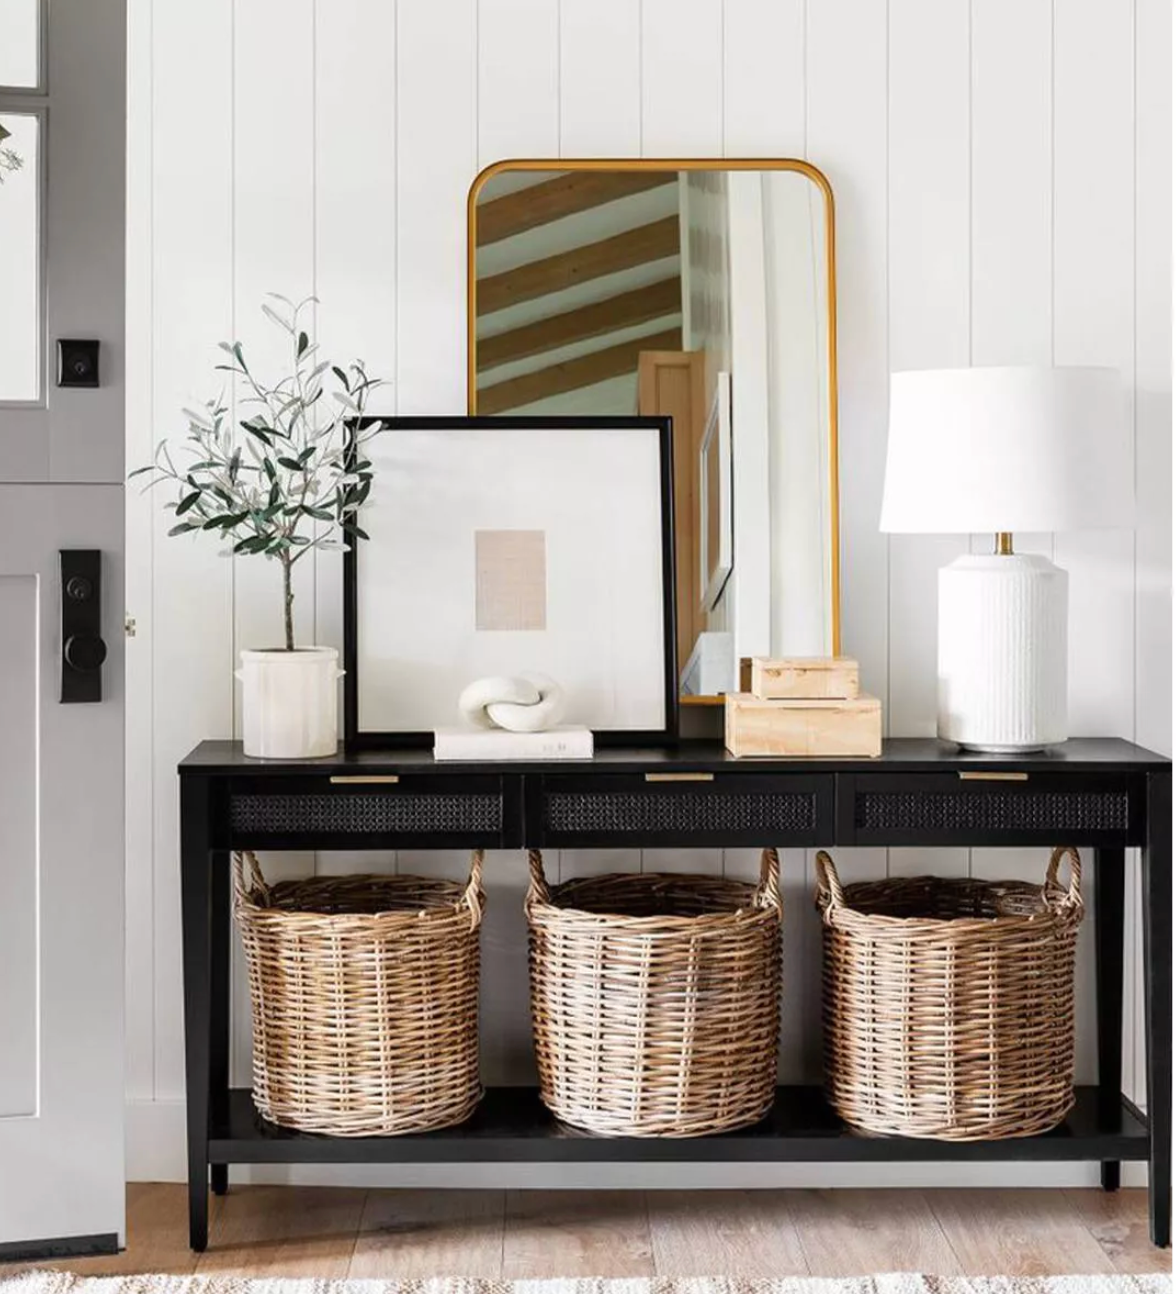 KAYTEE DESIGN CO BLOG- STUDIO MCGEE COLLECTION TARGET #worntoperfection #homestyle #homedecor #interiordesign #pursuepretty #abmathome #homewithrue #smmakelifebeautiful #makehomeyours #purposeinstyle #interiorstyling #thenewsouthern #californiacasual #sodomino #elledecor #abmhappylife #bhilivebeautifully #ggathome #currentdesignsituation #howwedwell #traditionalhome #californianatural #idcoathome #lindsayhillloves #howyouhome #myhousebeautiful #lonnyliving #utah